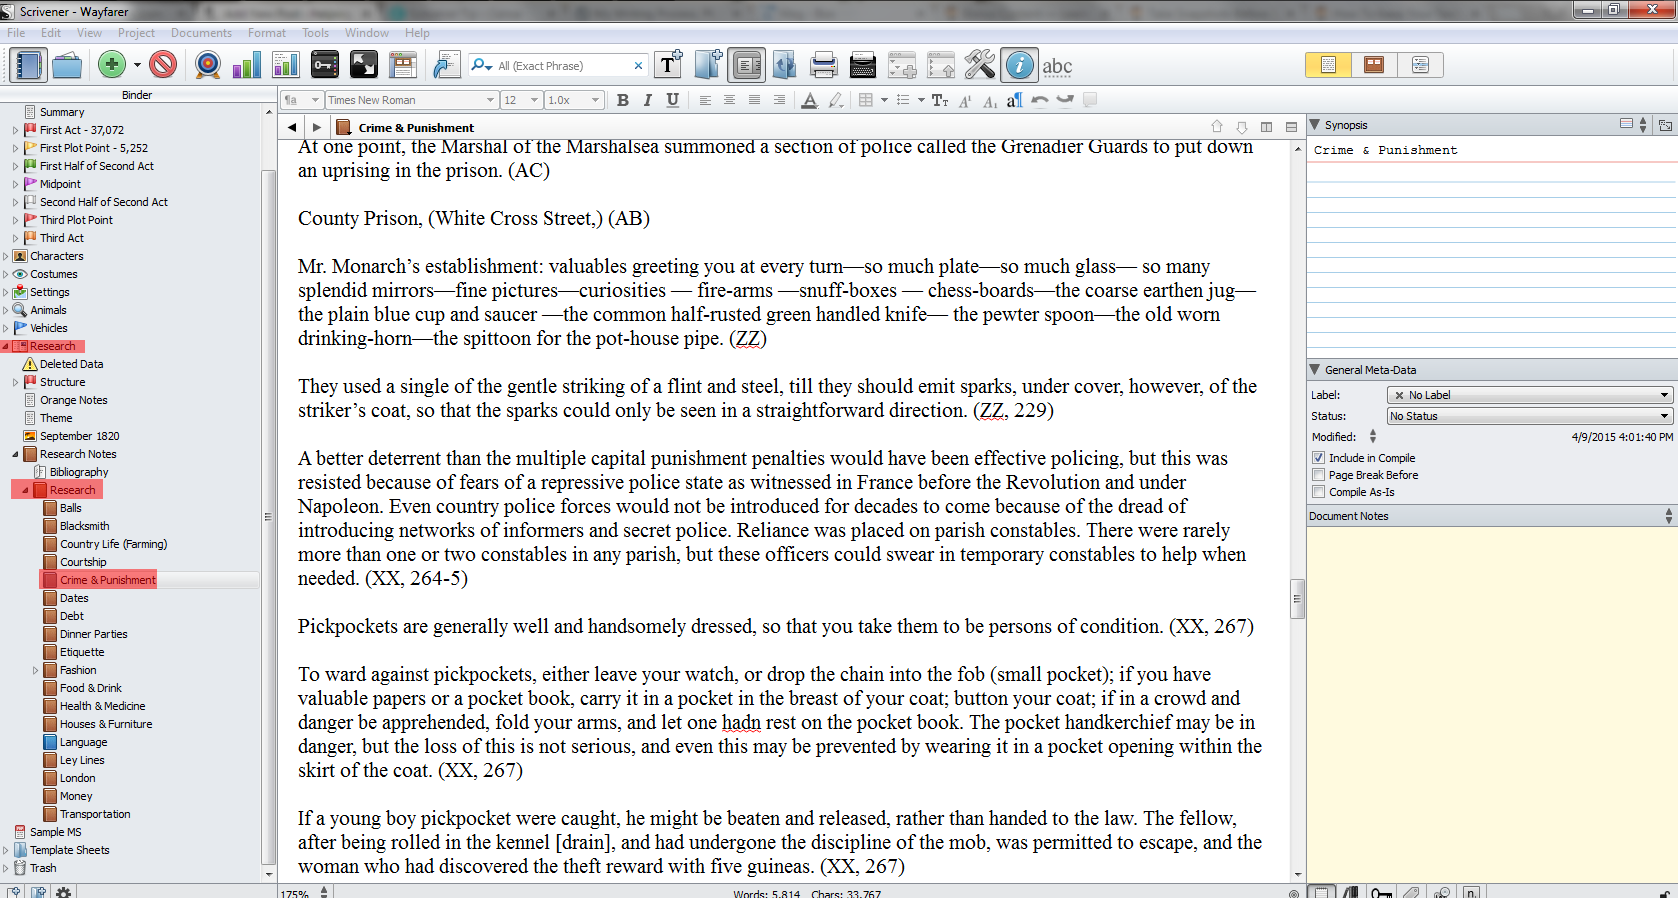 Writing_Process_Scrivener_Research_Notes